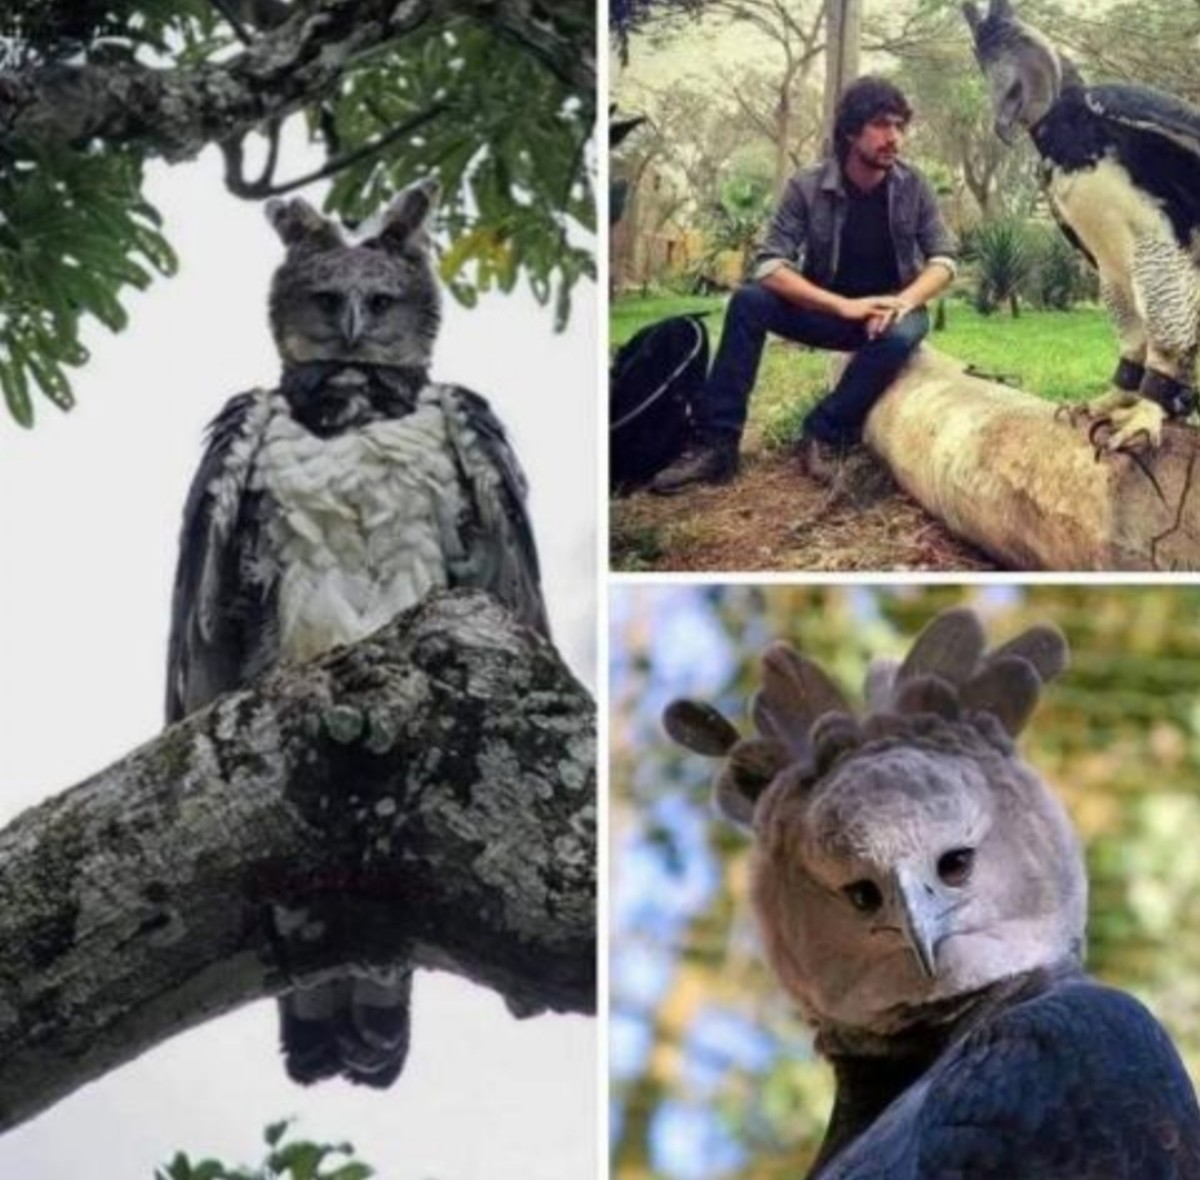 Harpy eagle. Add this to the list of animals that are just people in animal costumes...right up with sun bears... People wonder why ancient humans used to worship animals and/or think they were fae type entities Tell me that if you were walking through the woods for days to